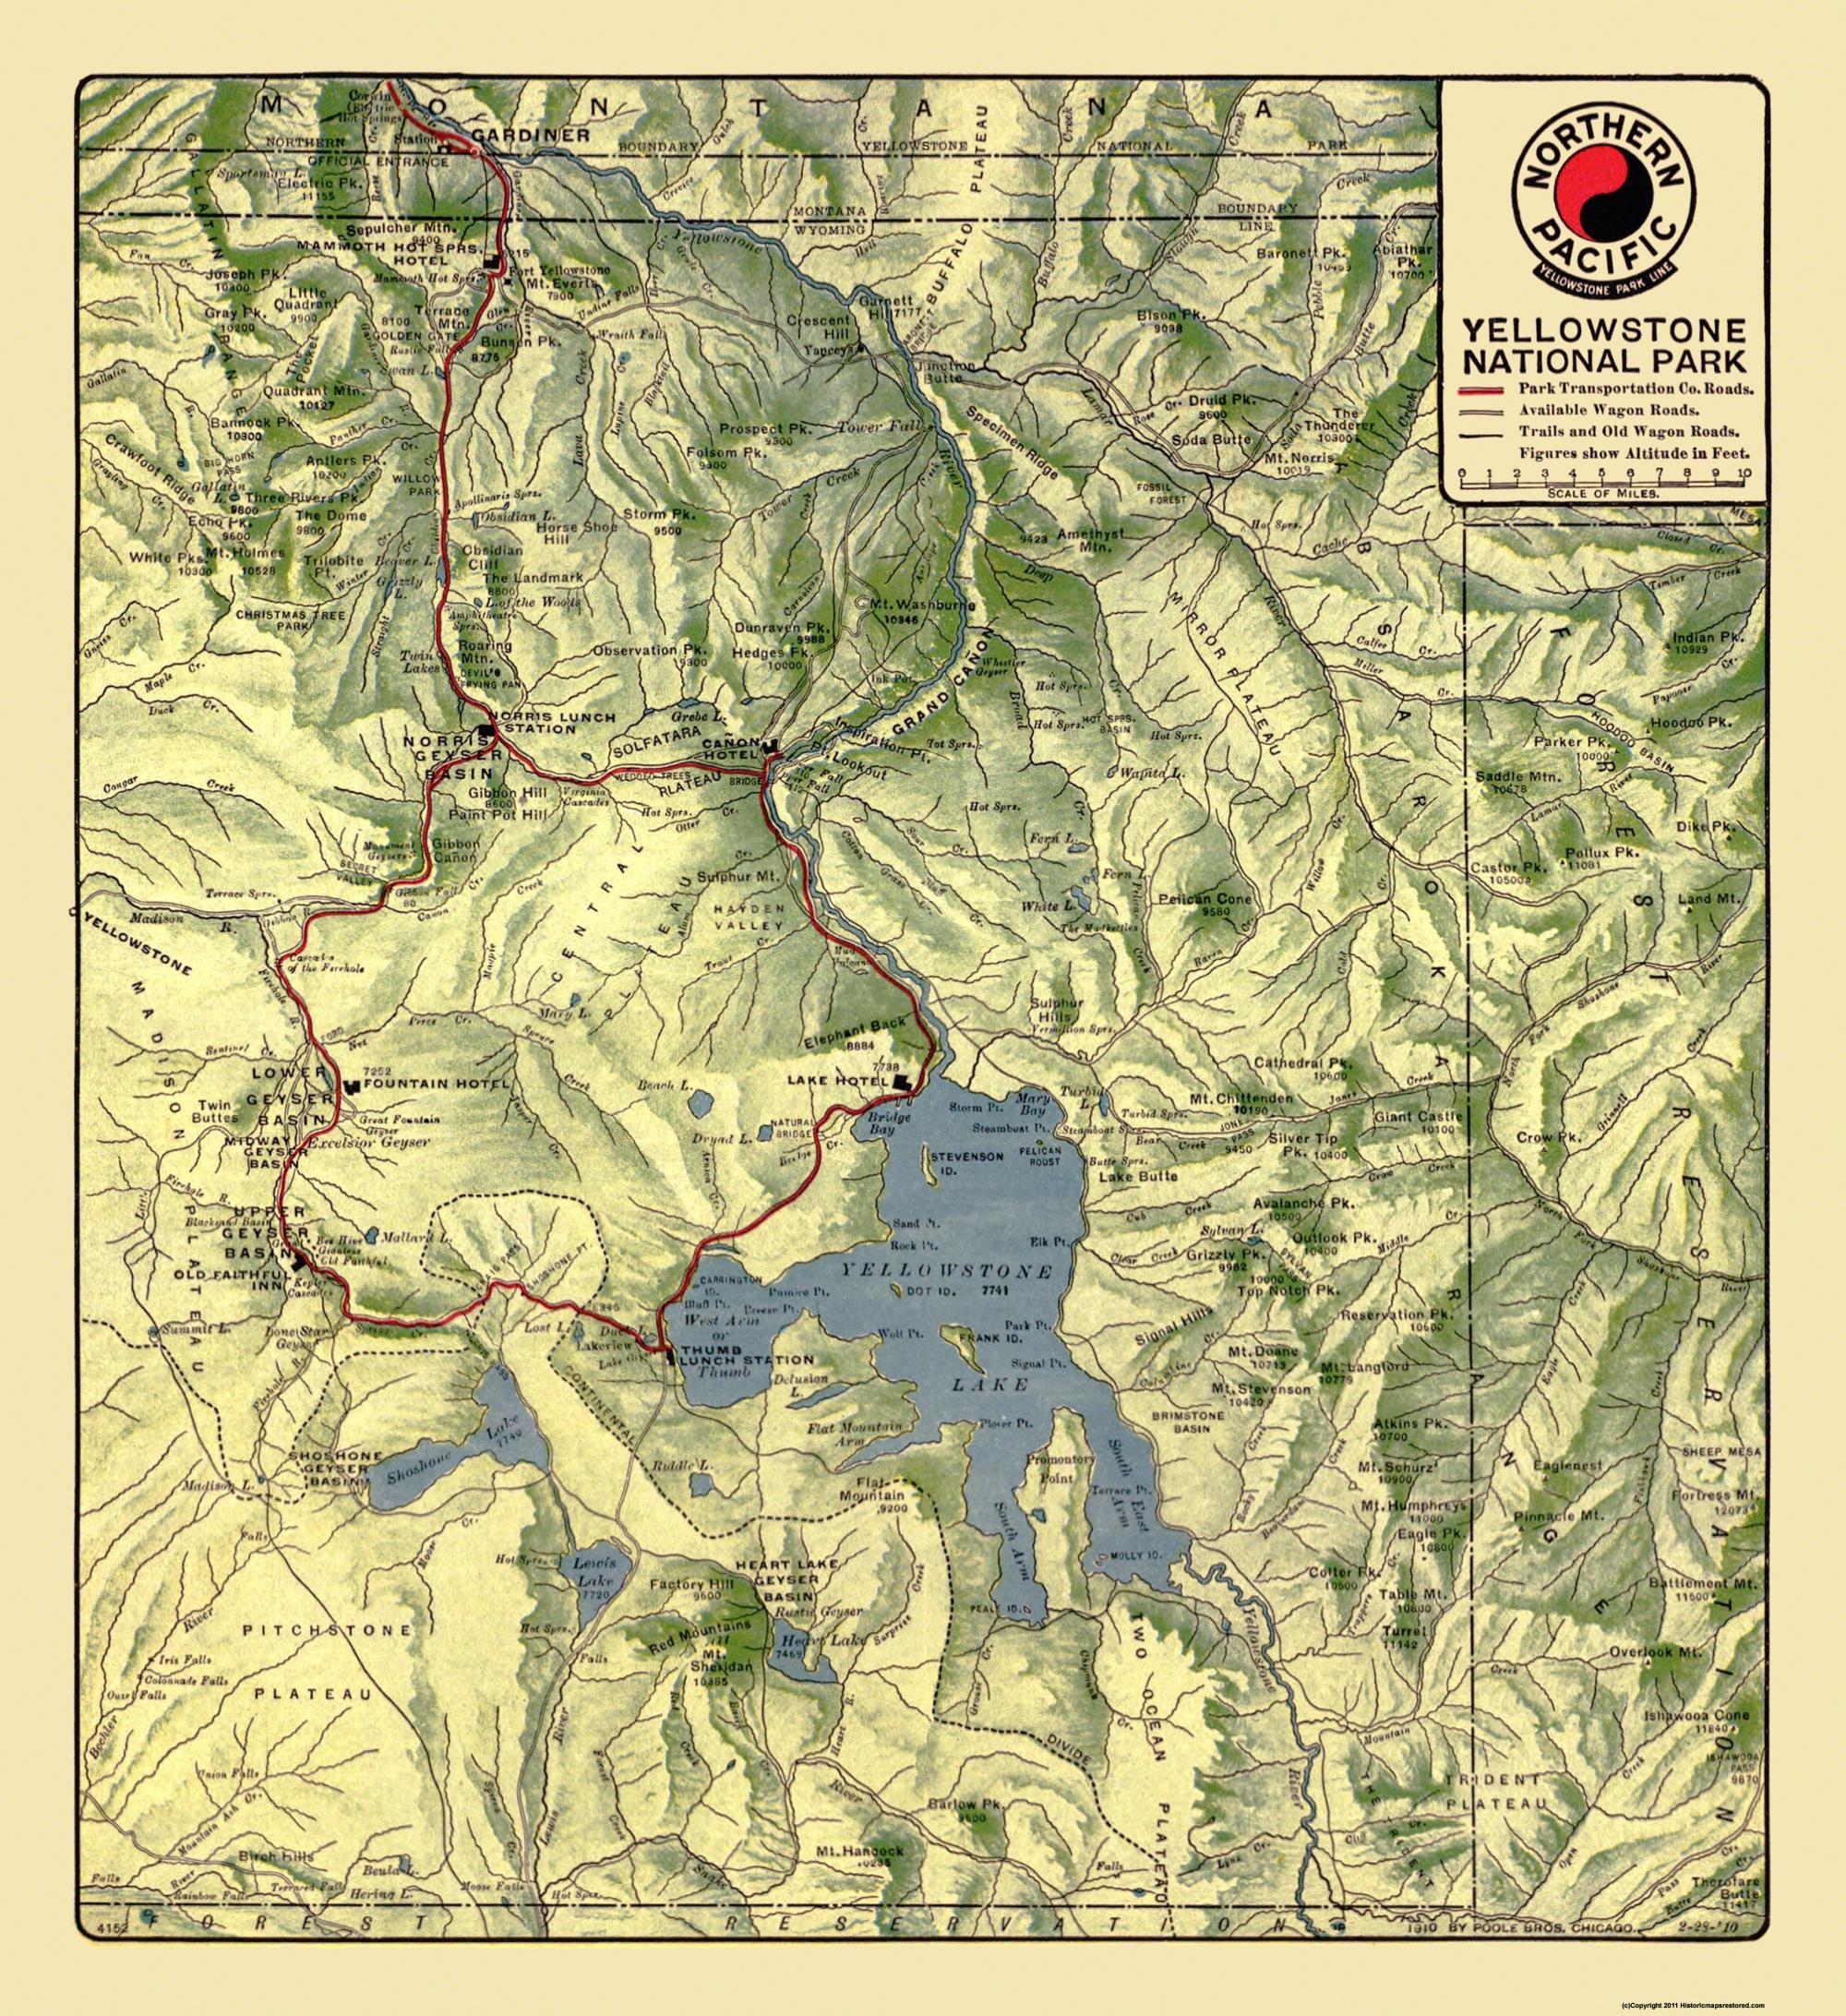 Old Railroad Map - Yellowstone National Park 1910